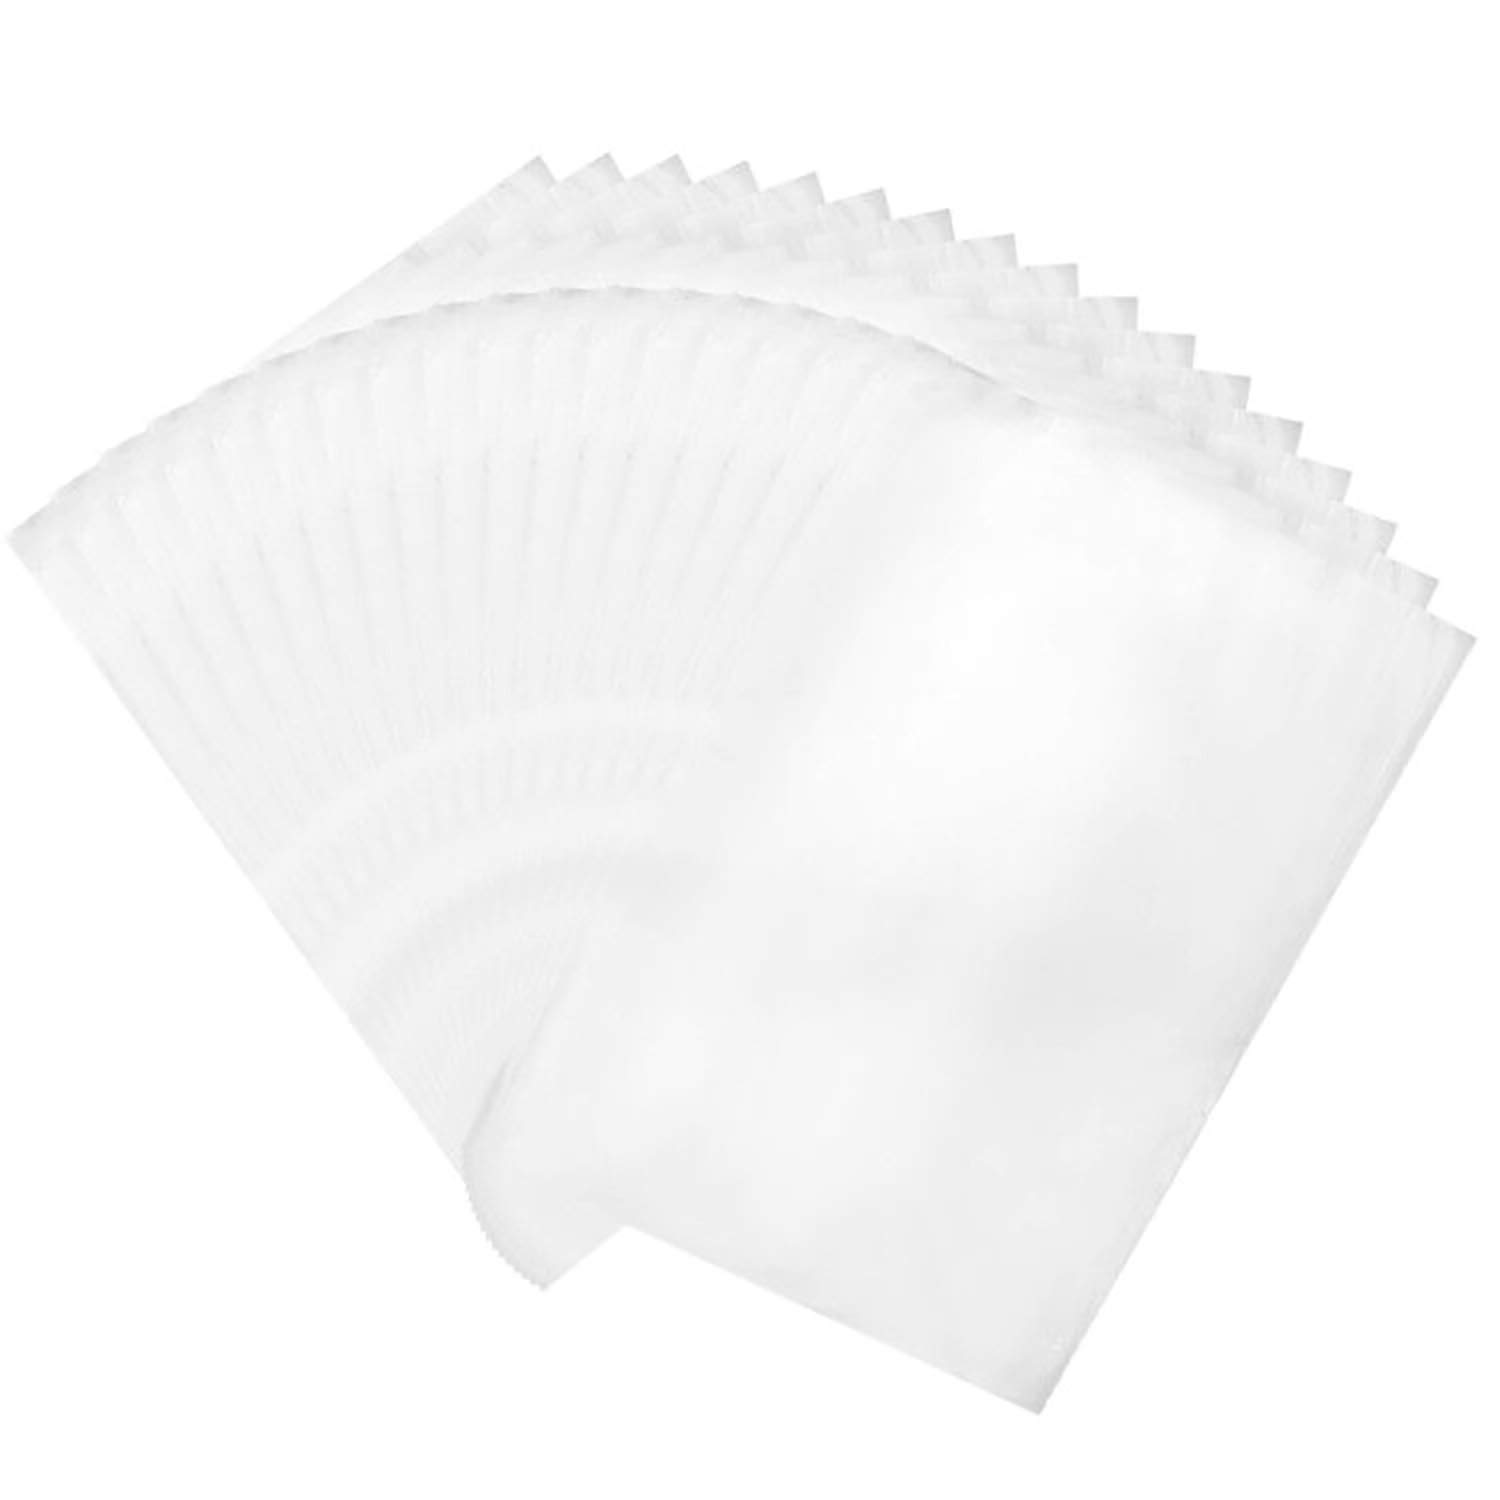 4x6 Inch and 5.5x8 Inch Shrink Wrap Bags, Clear PVC Heat Shrink